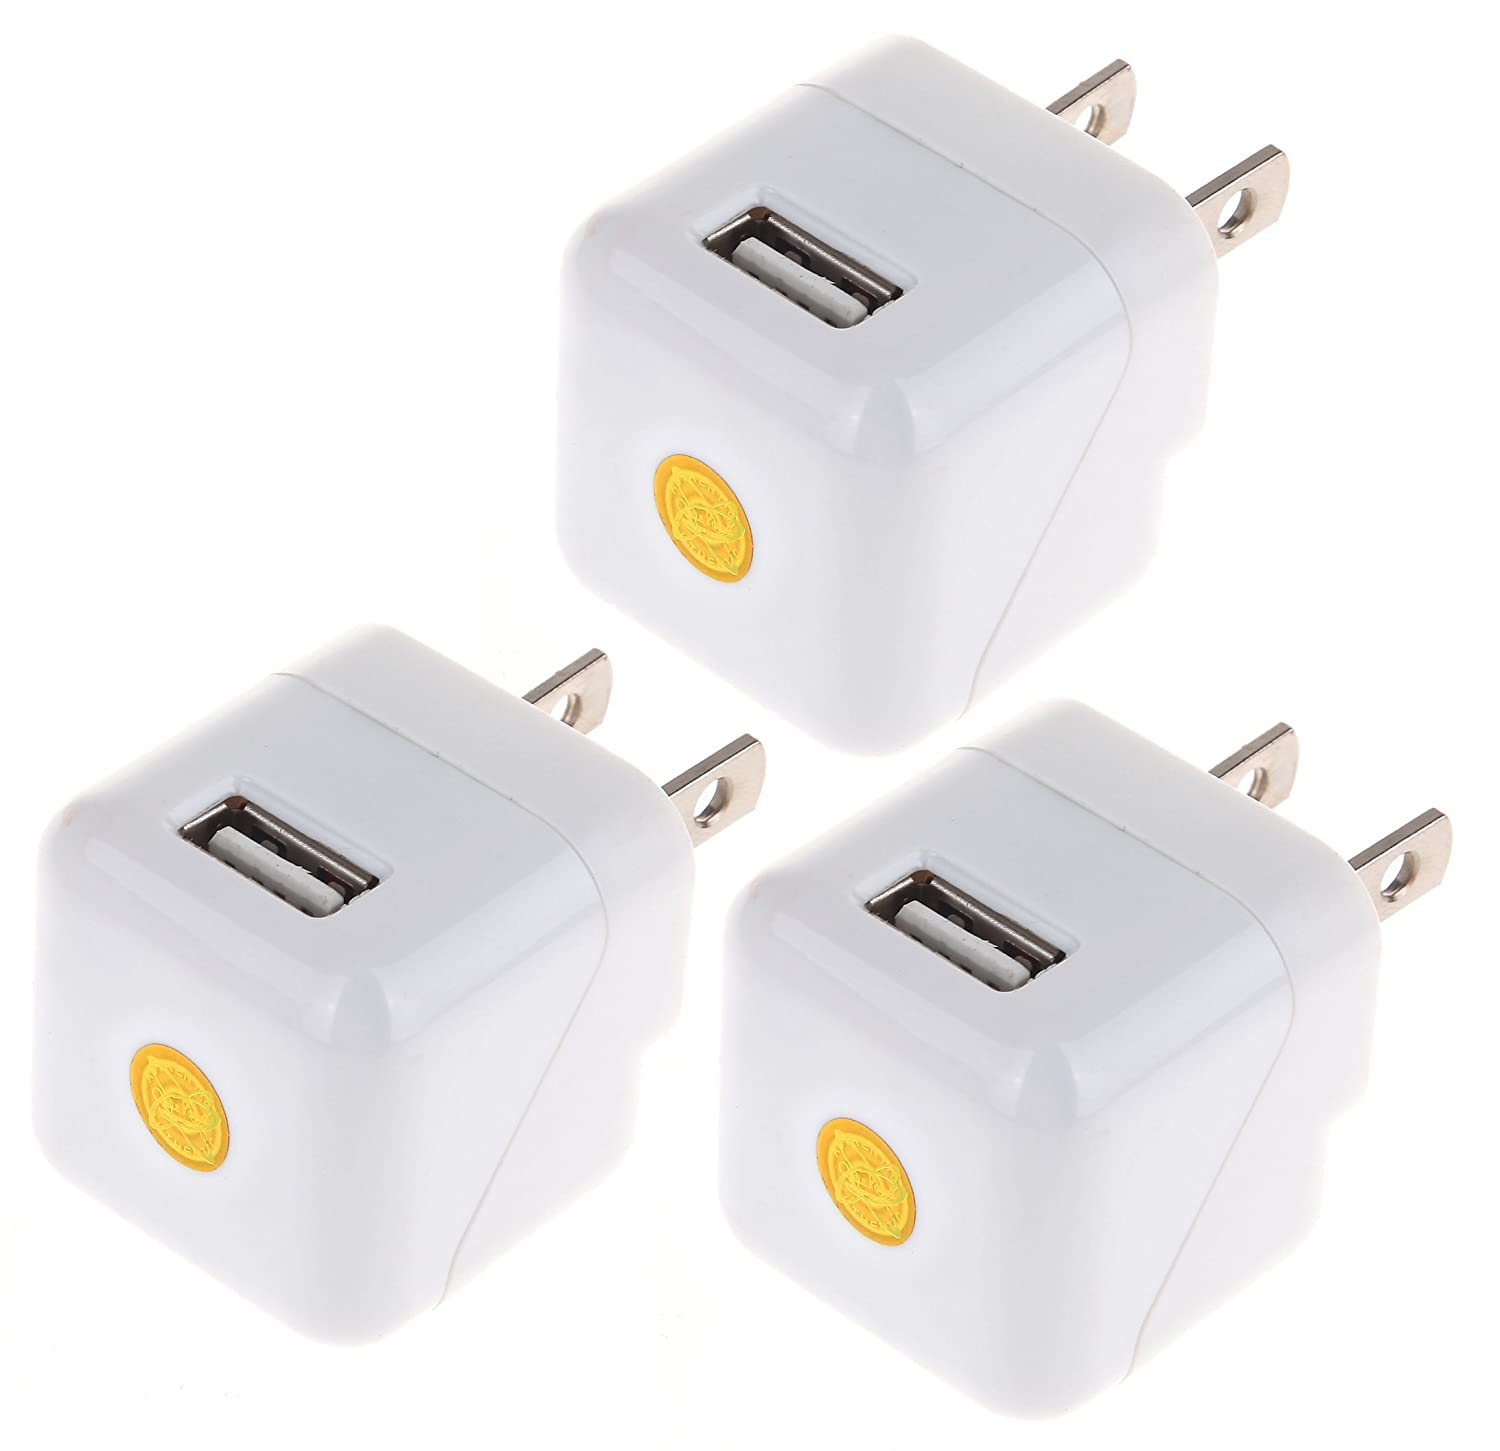 Cube Color USB AC/DC 1.0 AMP Power Adapter Wall Charger NEW DESIGN for iPhone 3G 3GS 4 4s 5 5s 5c 6 6 Plus ,iPod Touch Samsung Galaxy S1 S2 S3 S4 S5 and other Devices